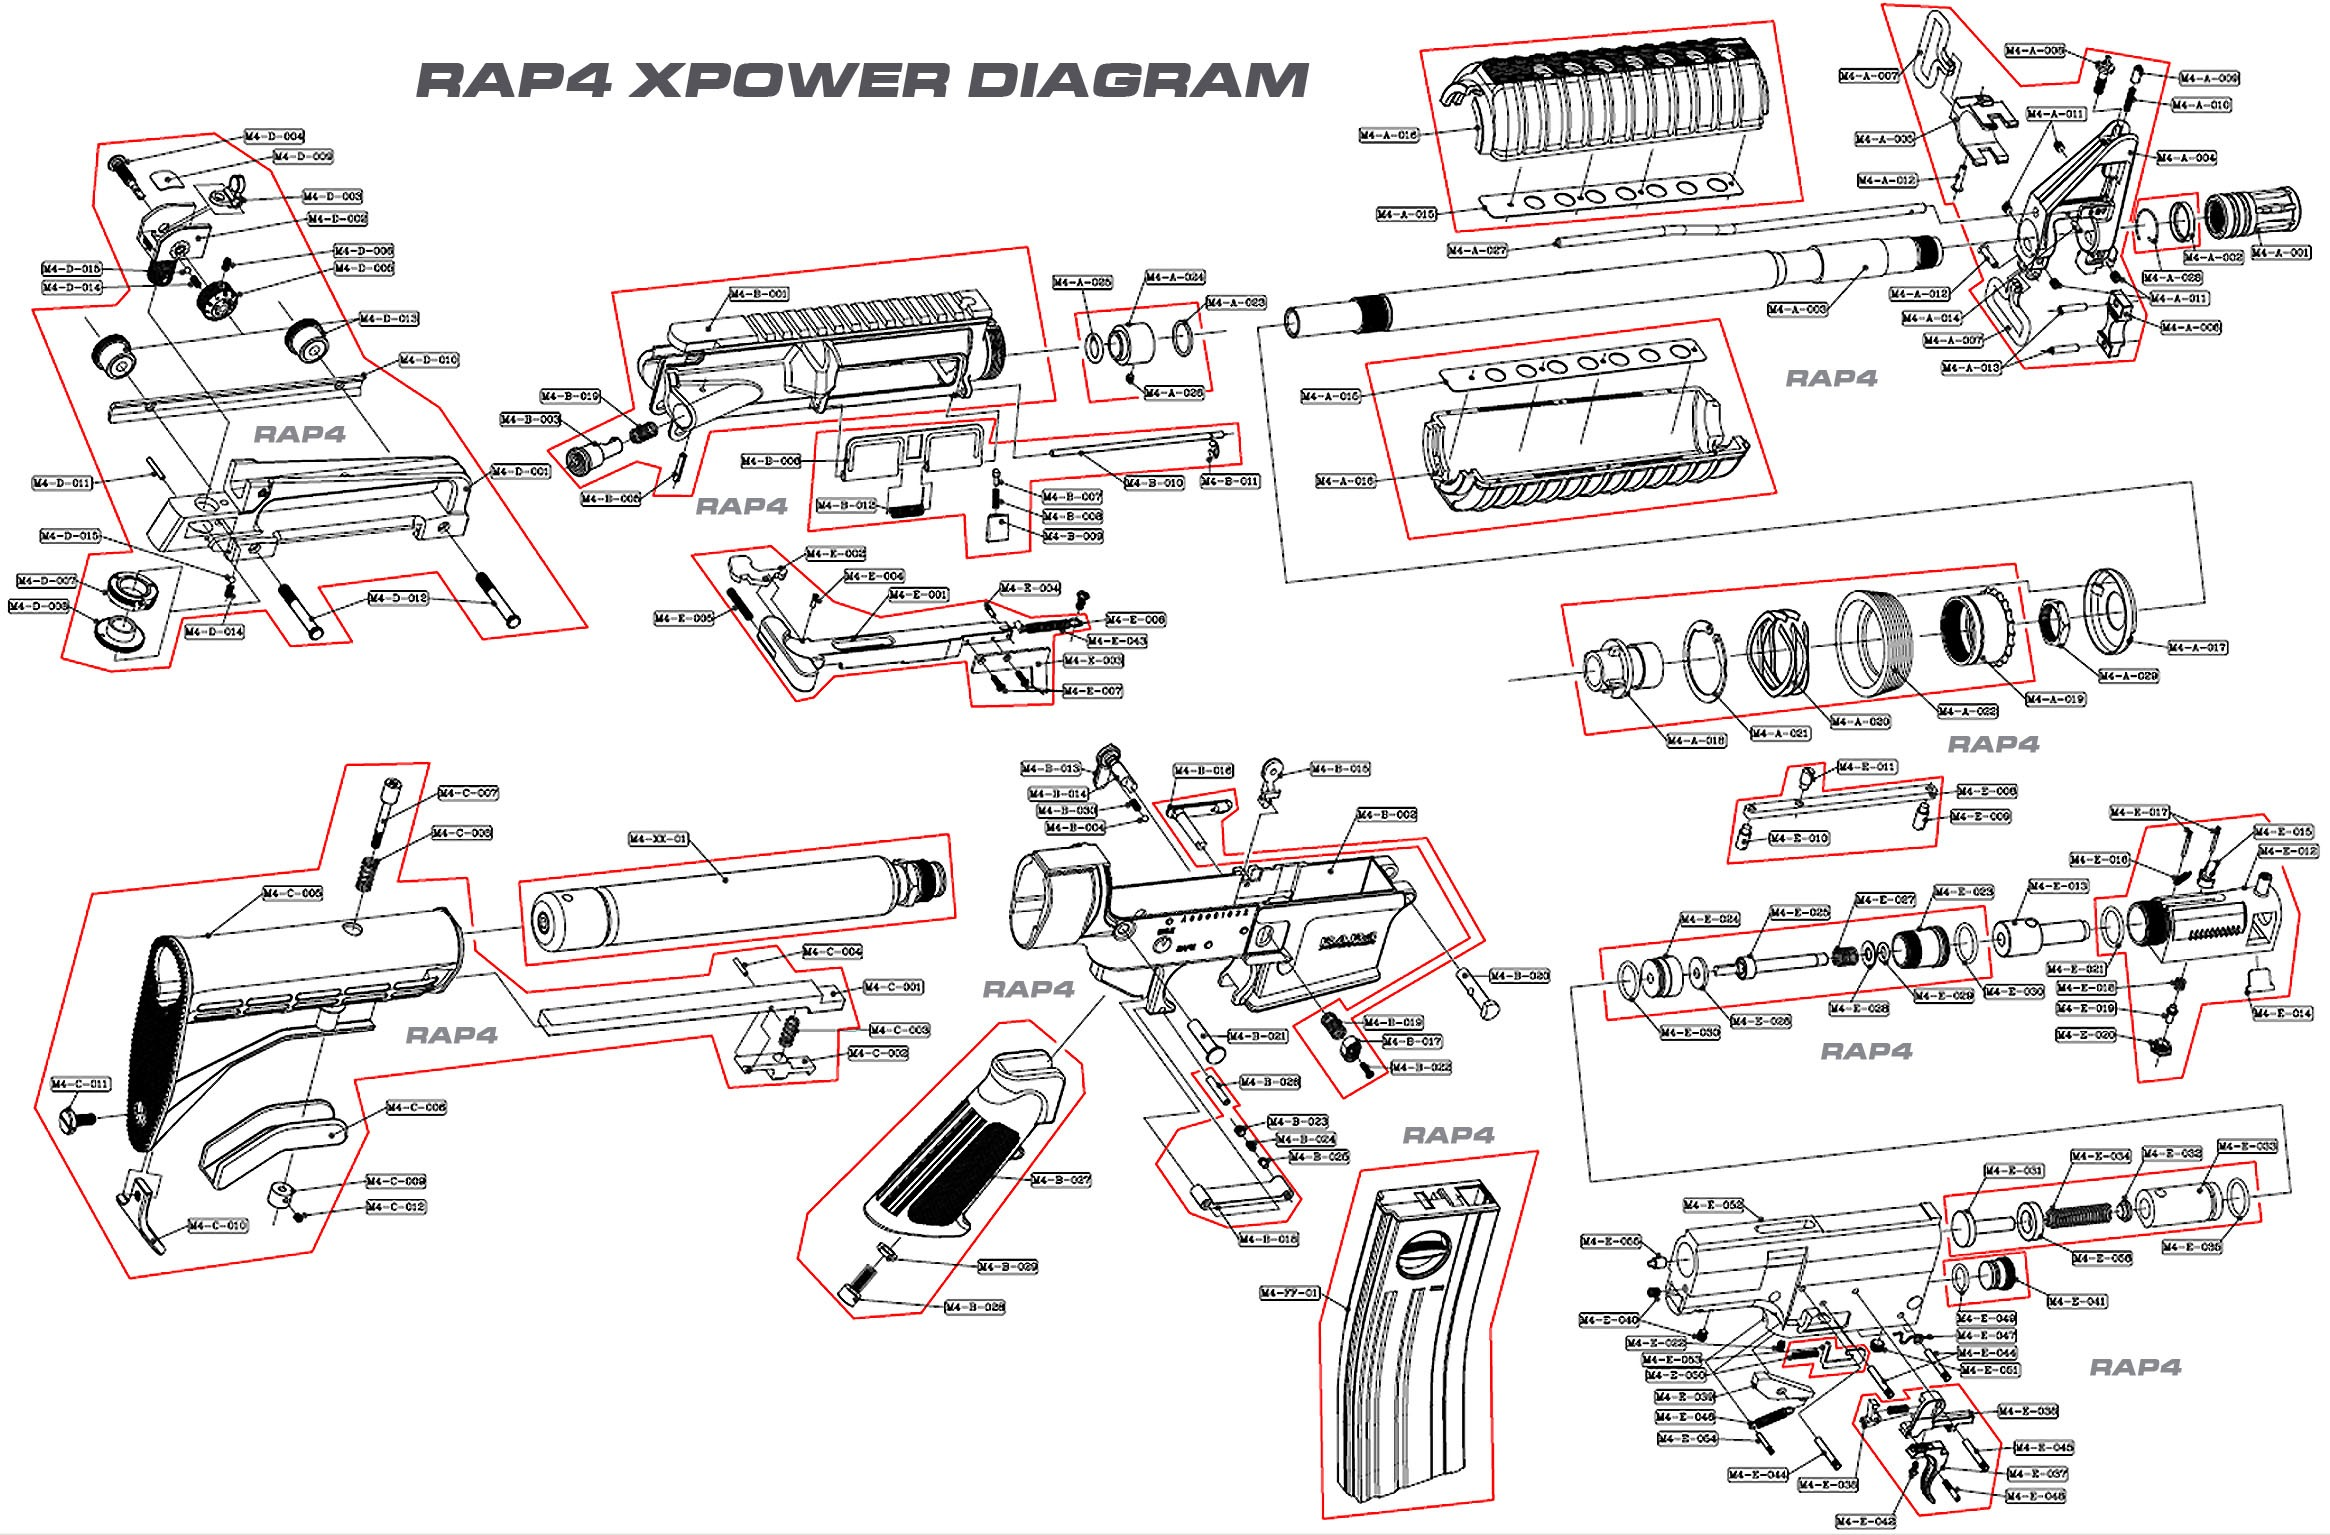 Diagram Of Car Components M4 Carbine Schematic Military Pinterest Of Diagram Of Car Components